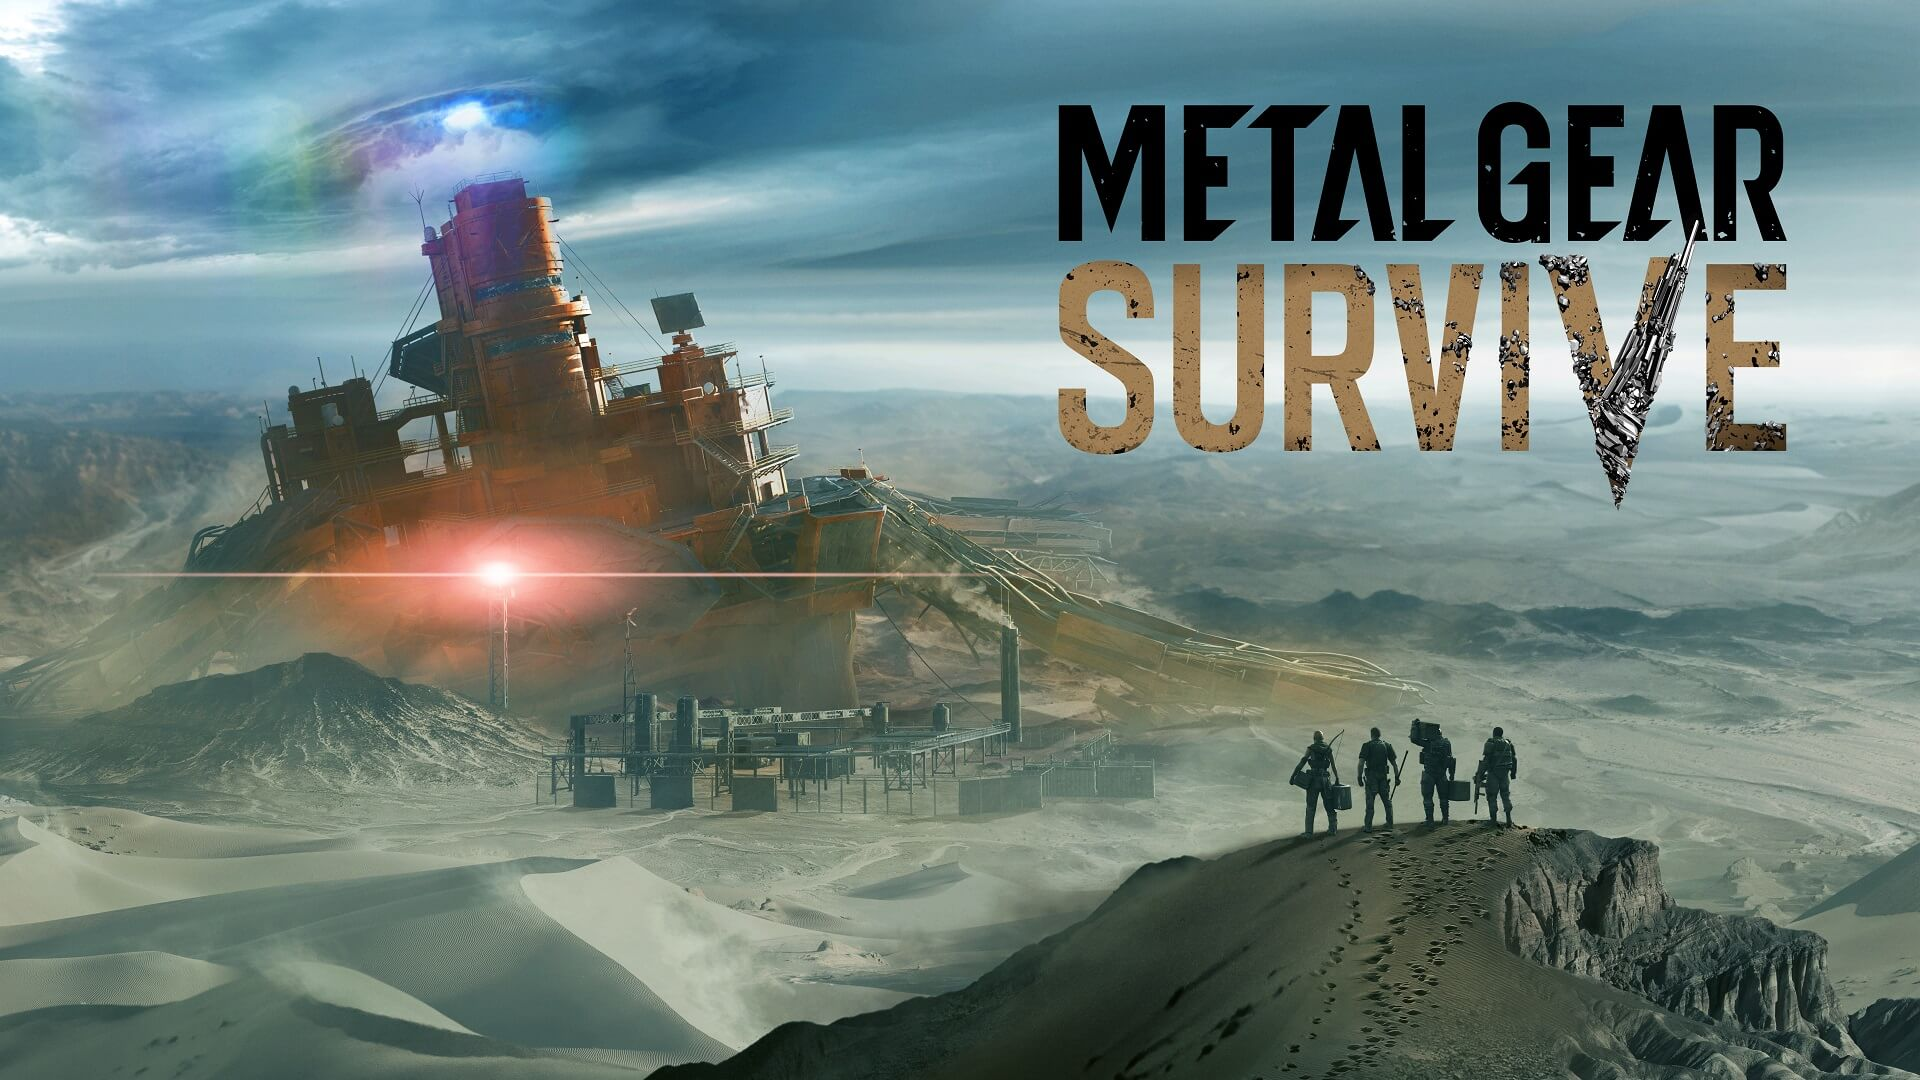 LagZero Analiza: Metal Gear Survive [Reseña dimensional]